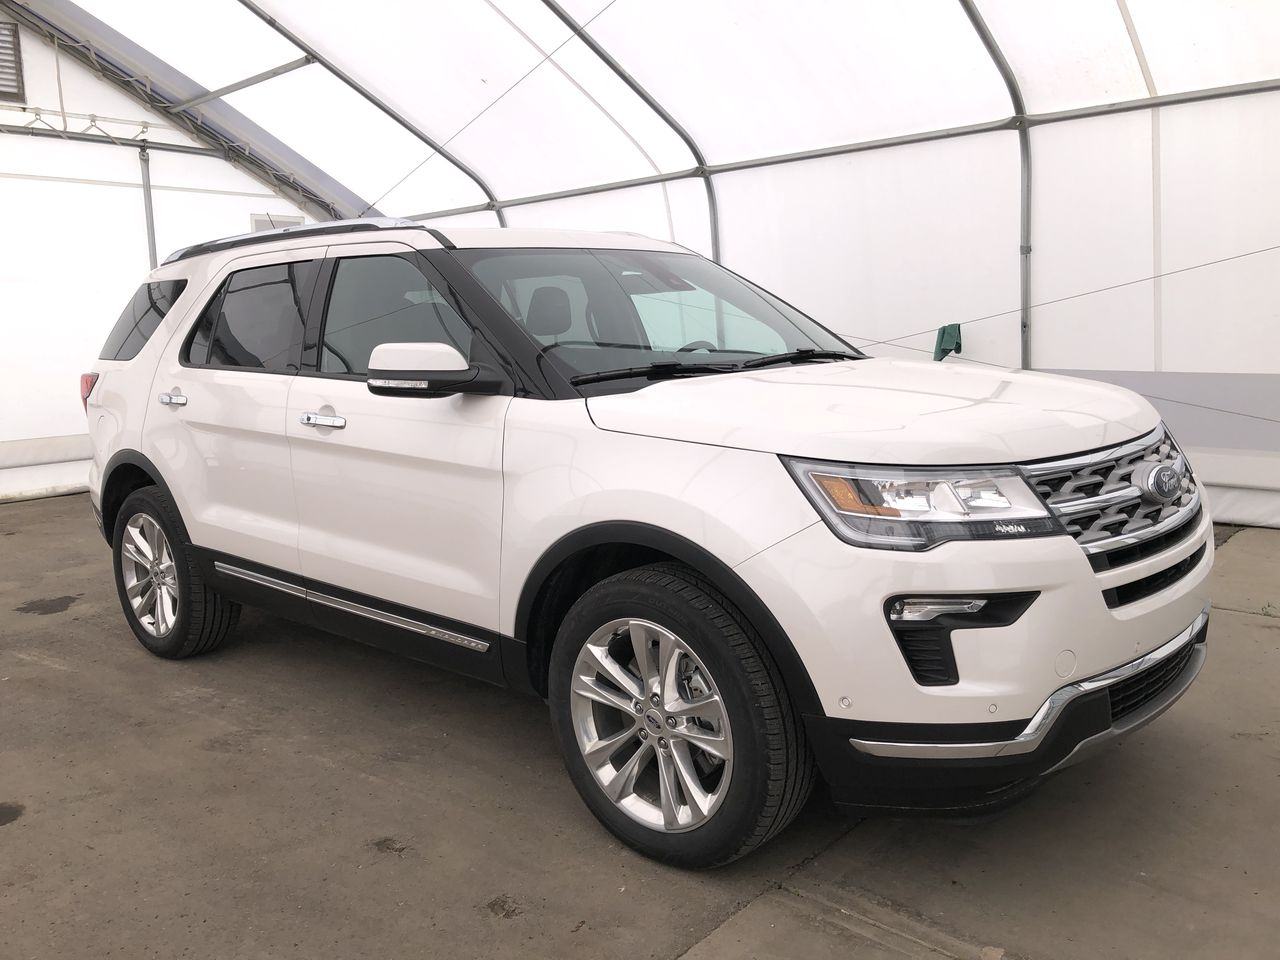 2019 Ford Explorer Limited (0N6417) Main Image